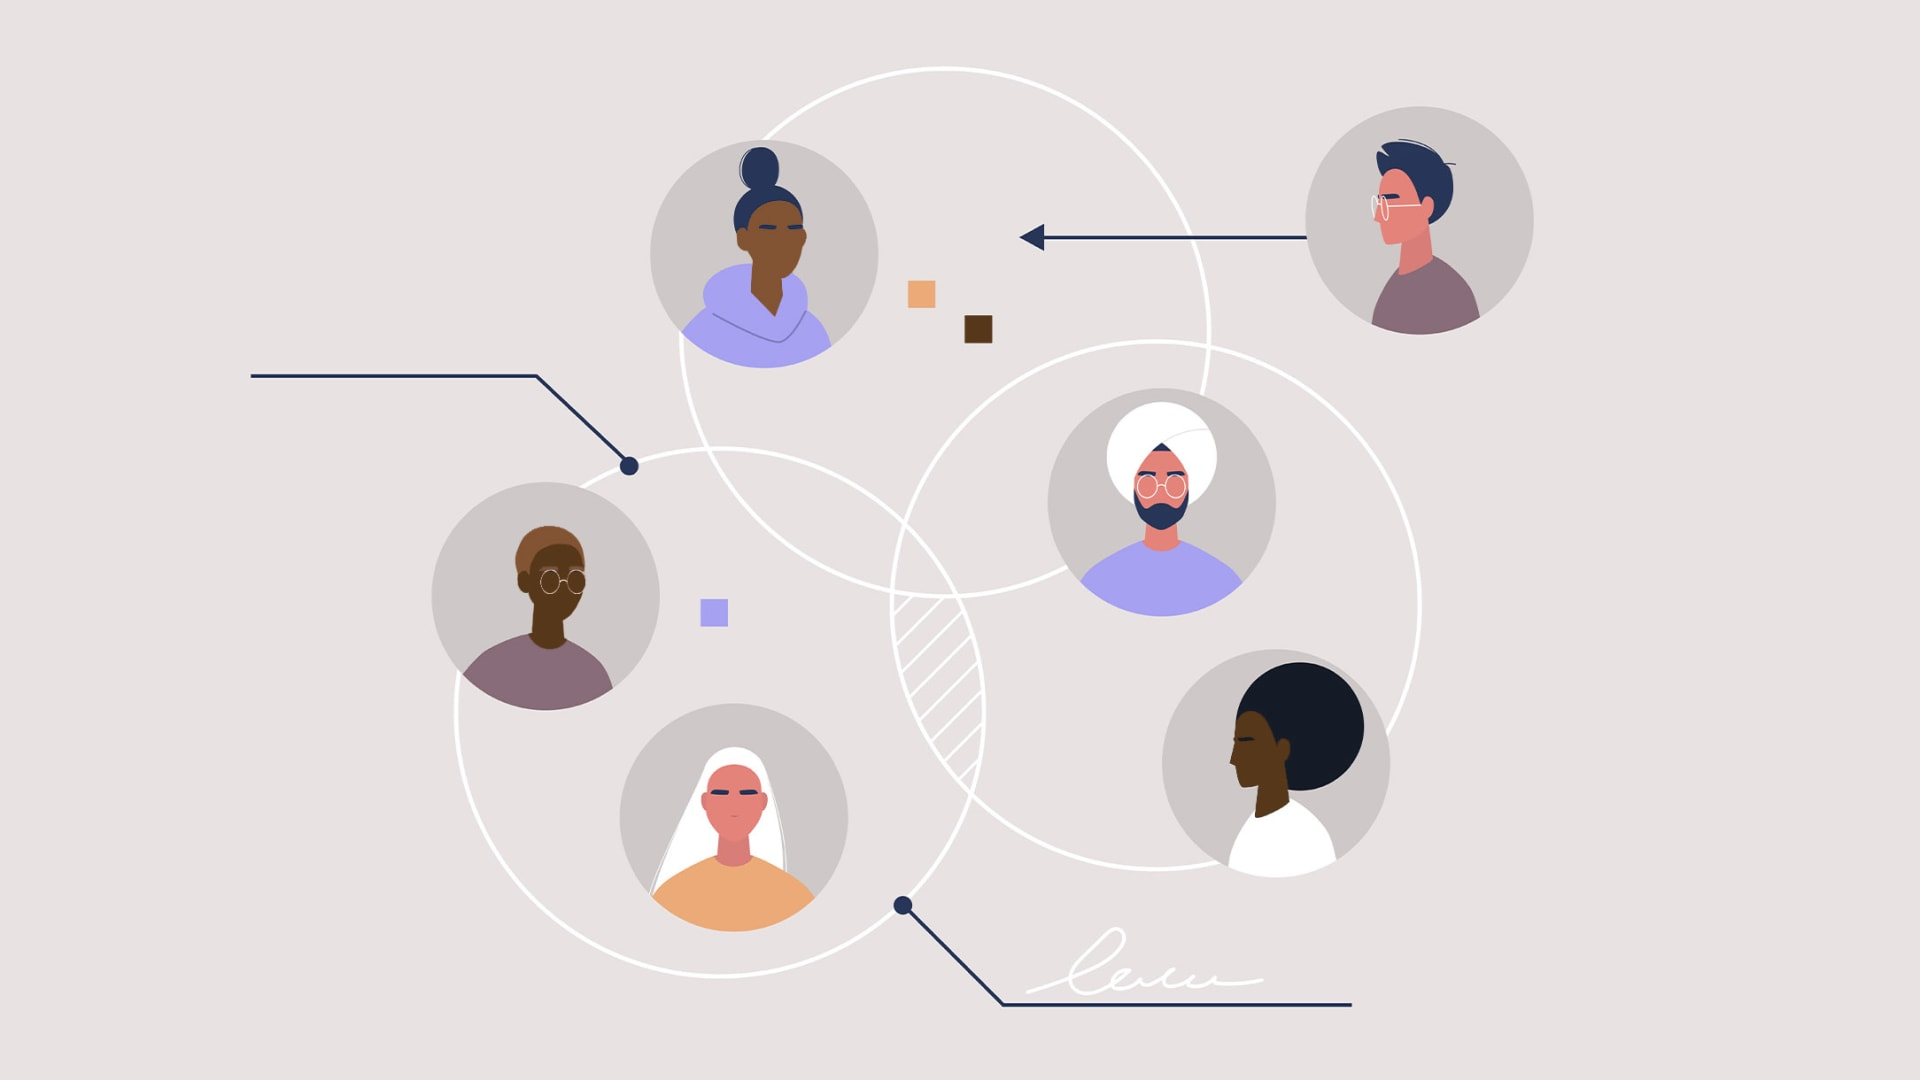 How to Build an Inclusive Culture When Leadership Isn't On Board